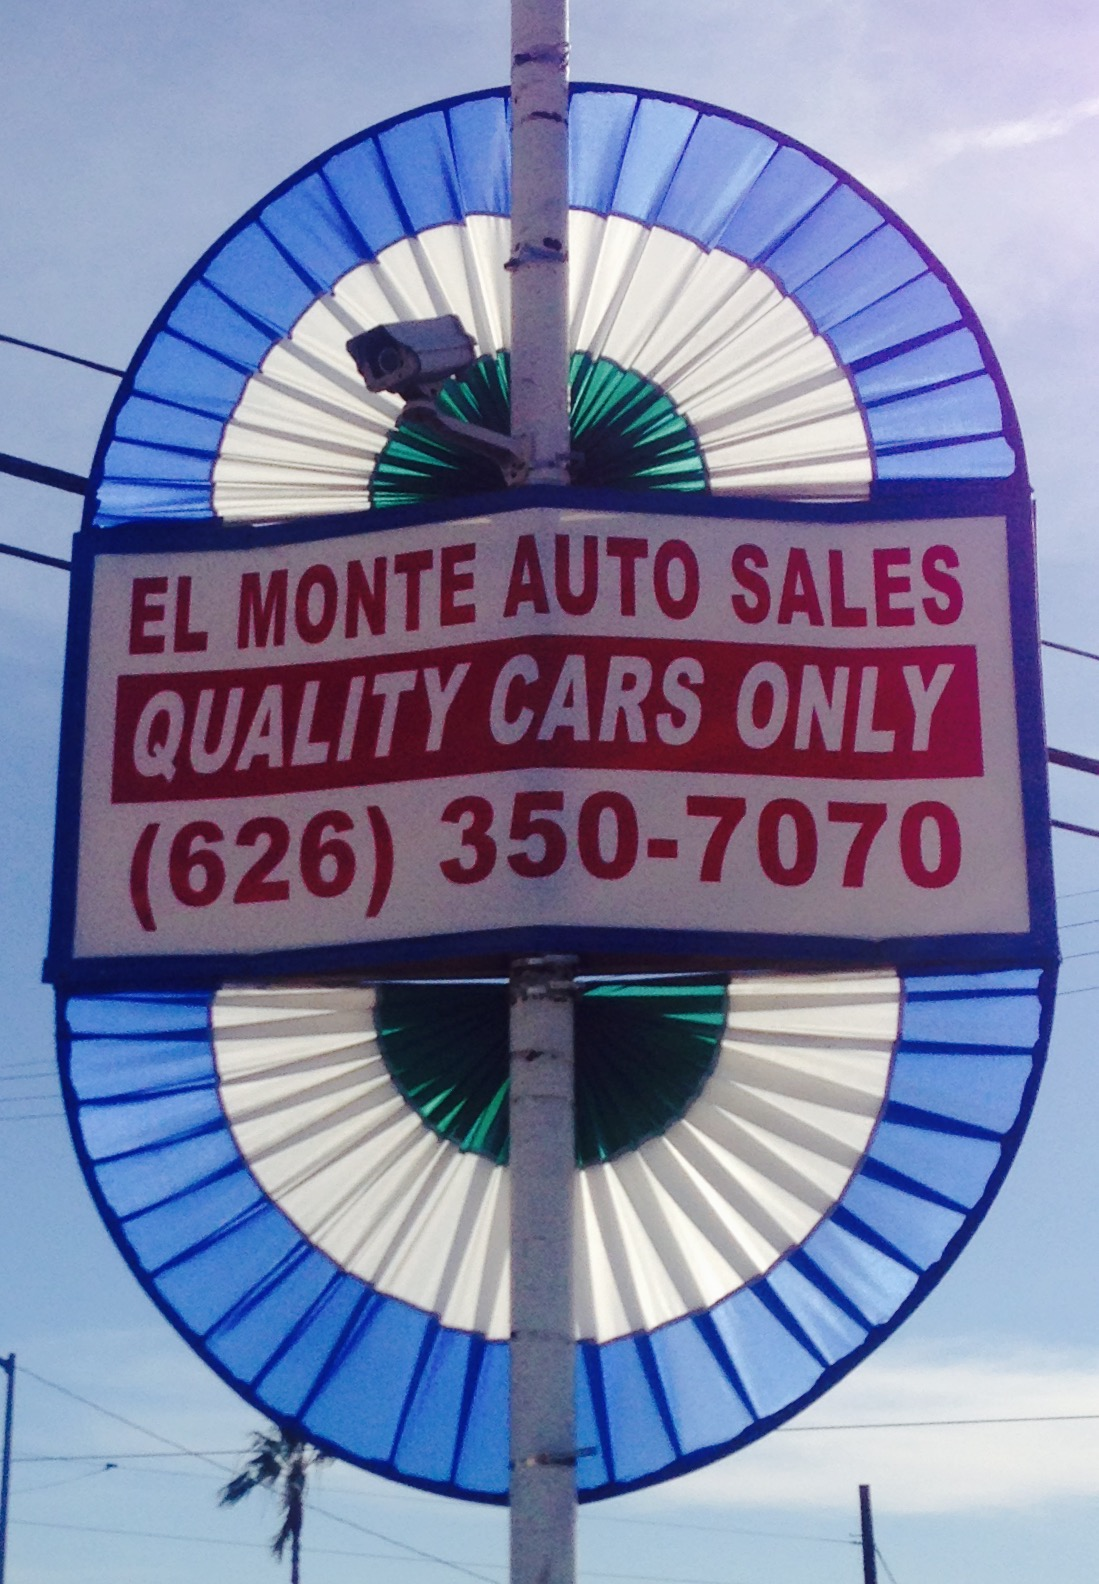 El Monte Auto Sales, South El Monte CA